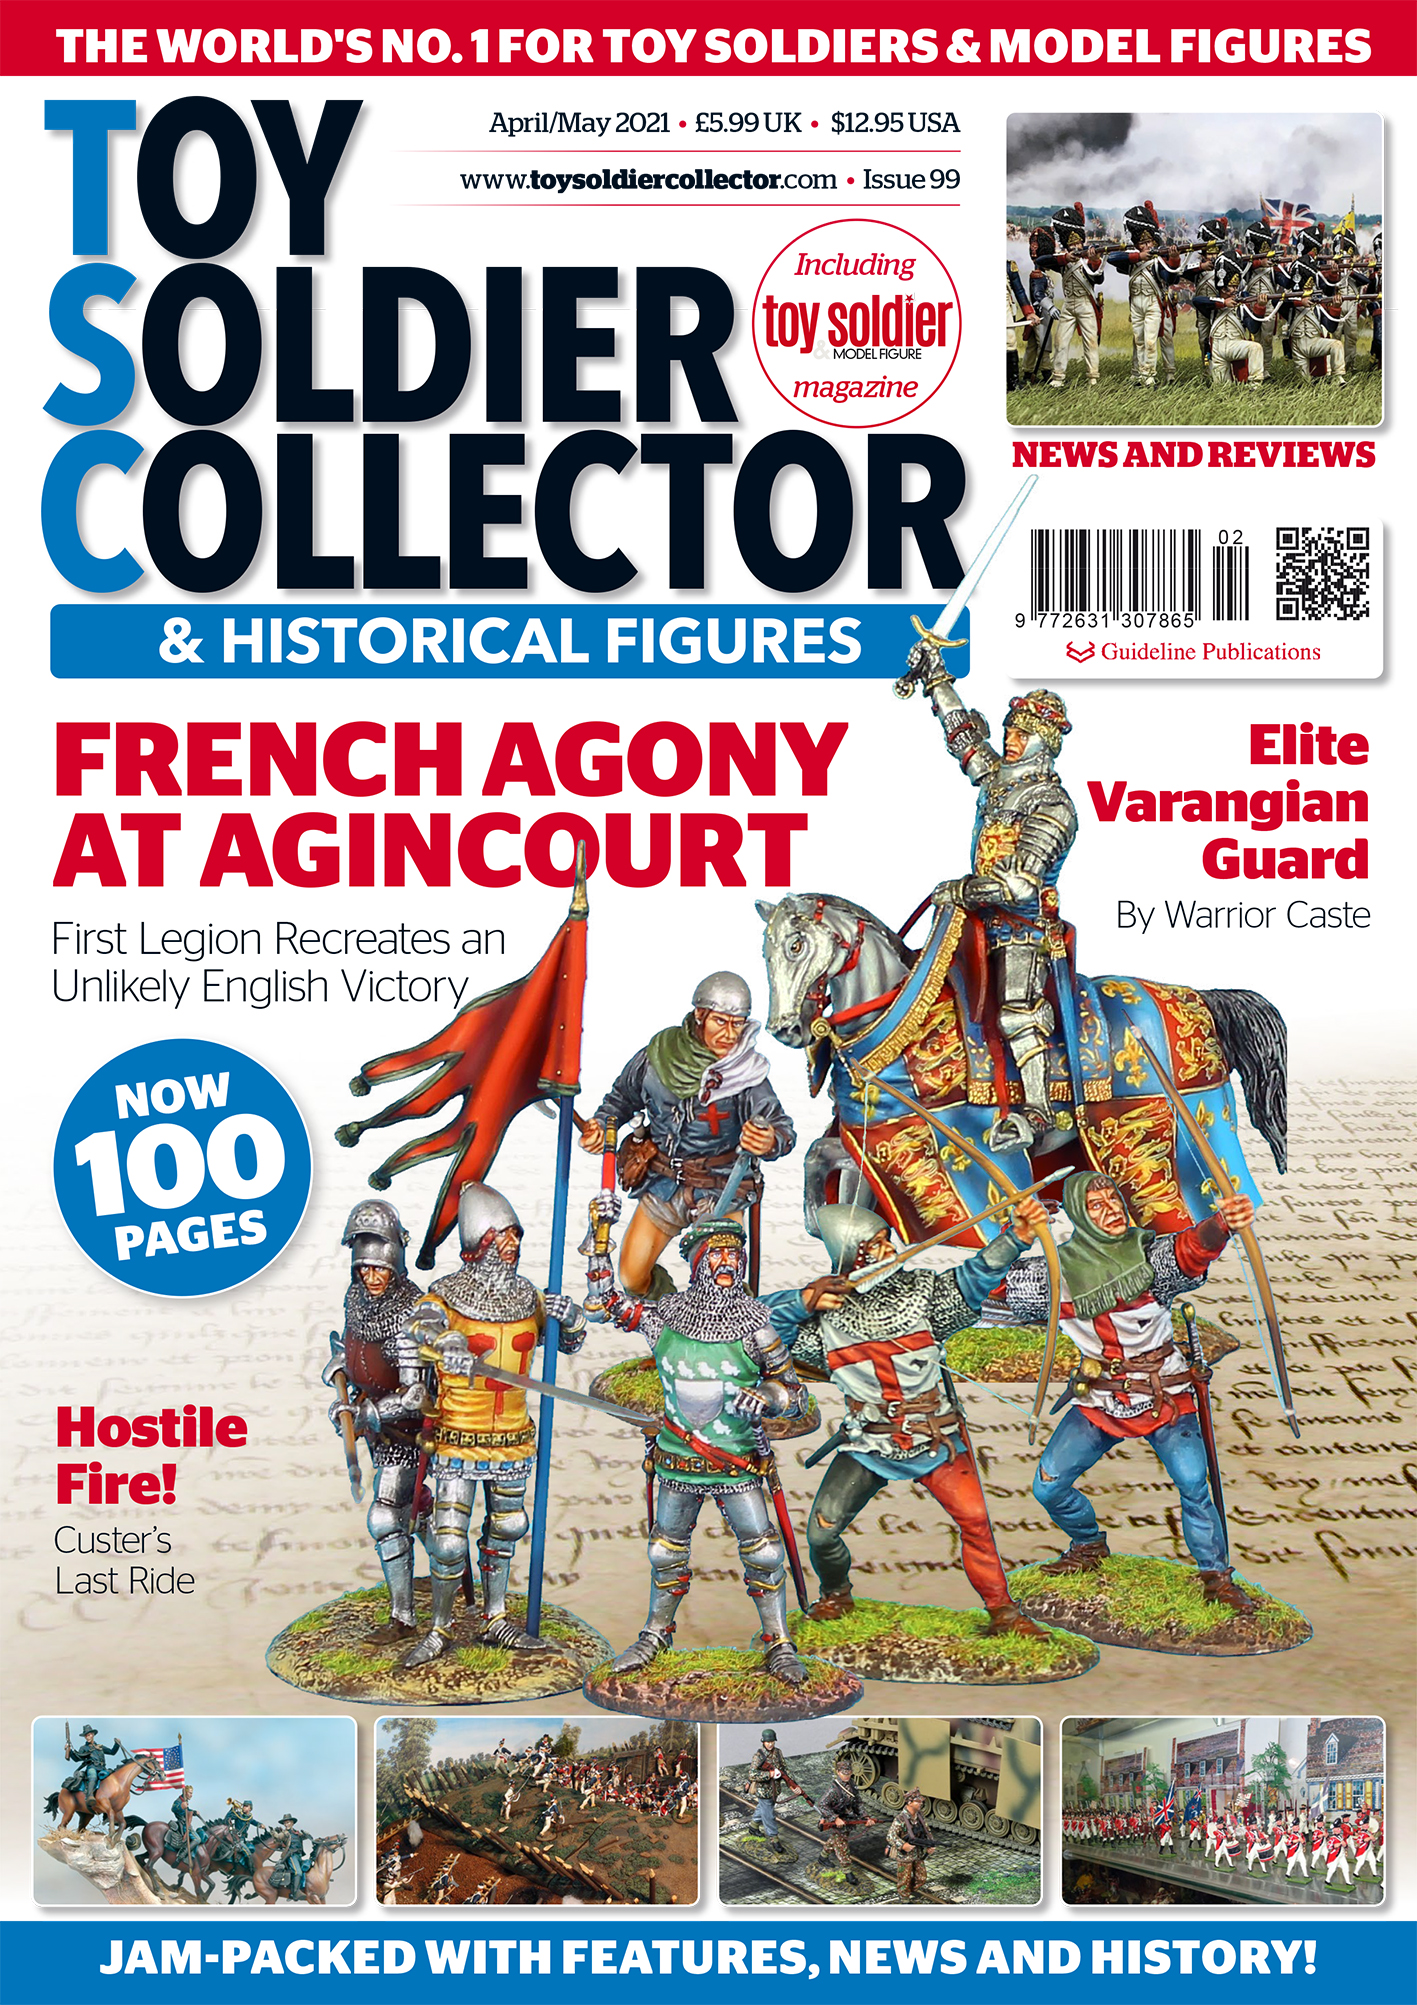 Guideline Publications Toy Soldier Collector #99 Apr/May 21 - Issue 99